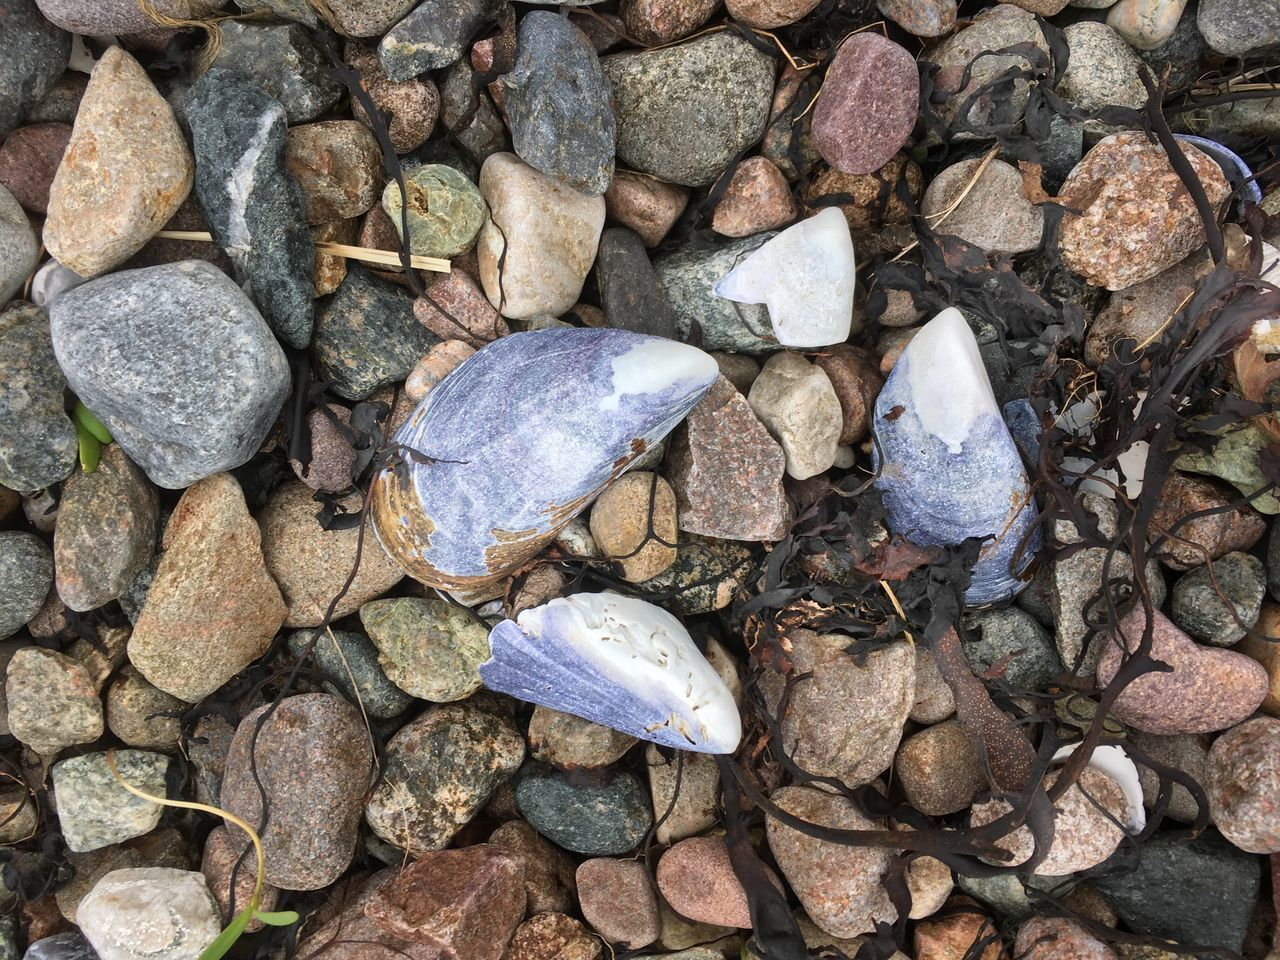 stone - object, rock - object, pebble, no people, day, nature, outdoors, close-up, pebble beach